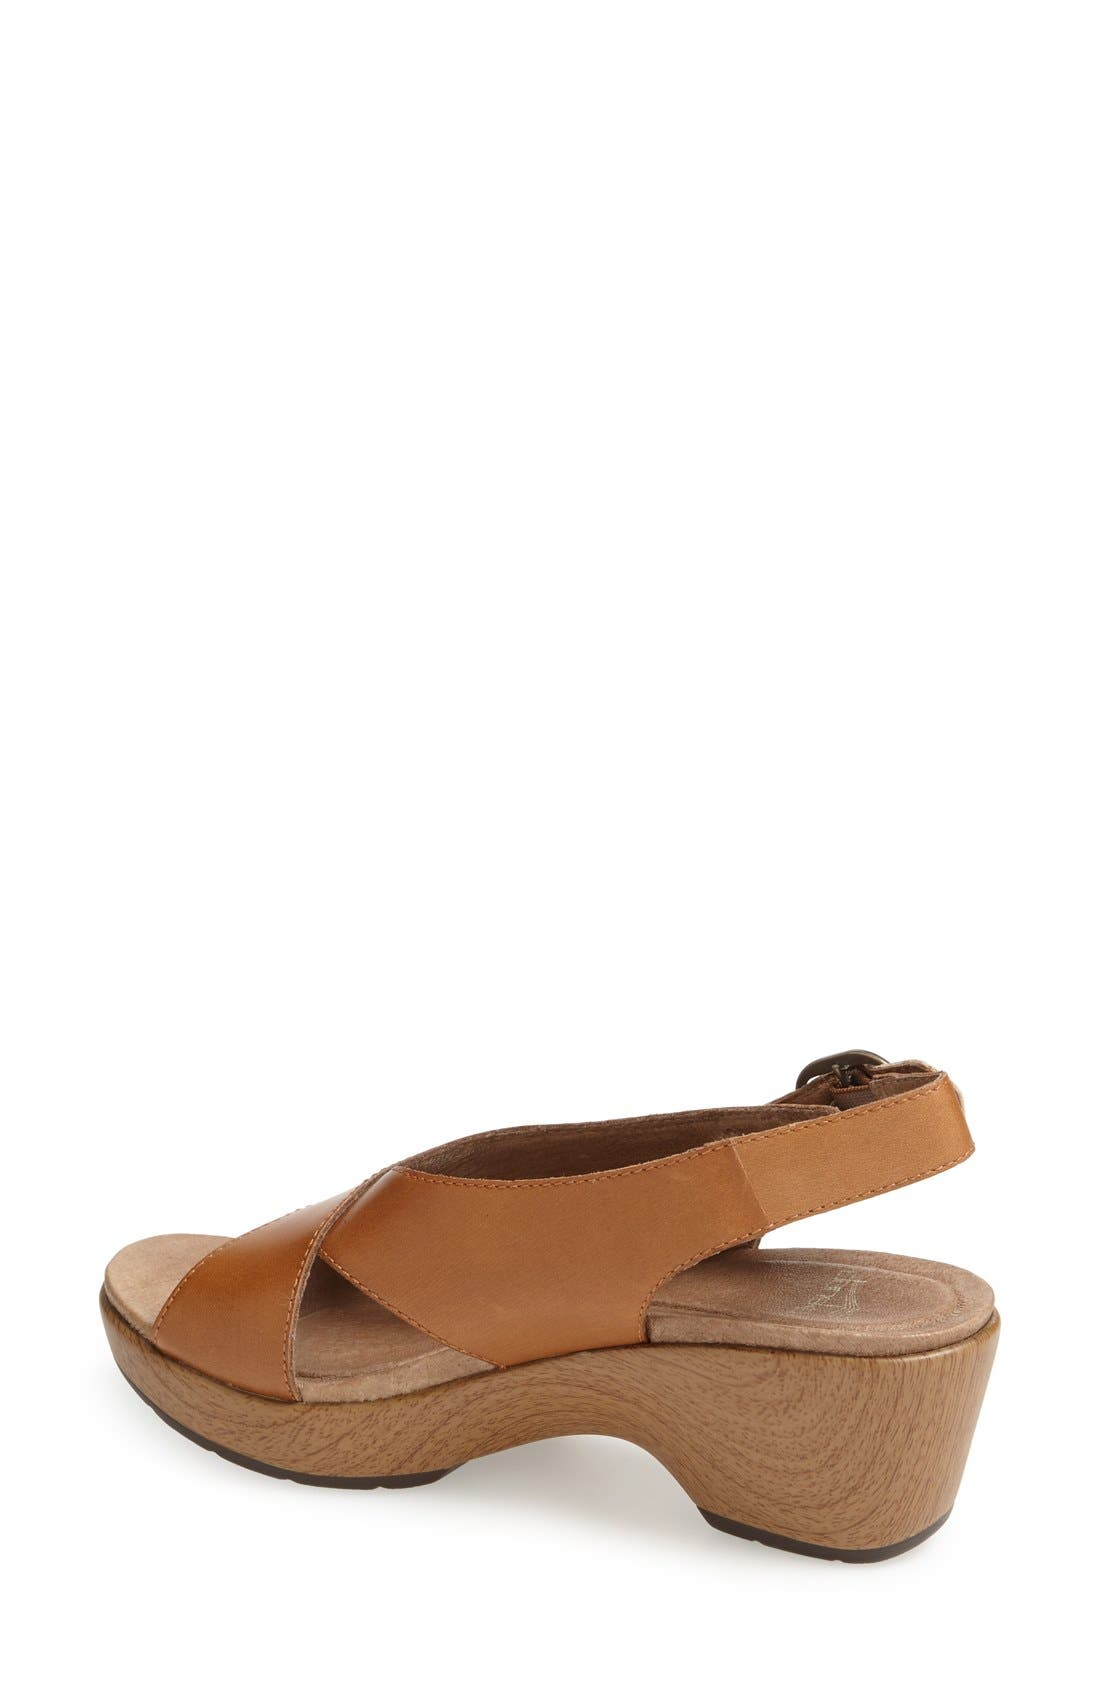 'Jacinda' Sandal,                             Alternate thumbnail 2, color,                             Caramel